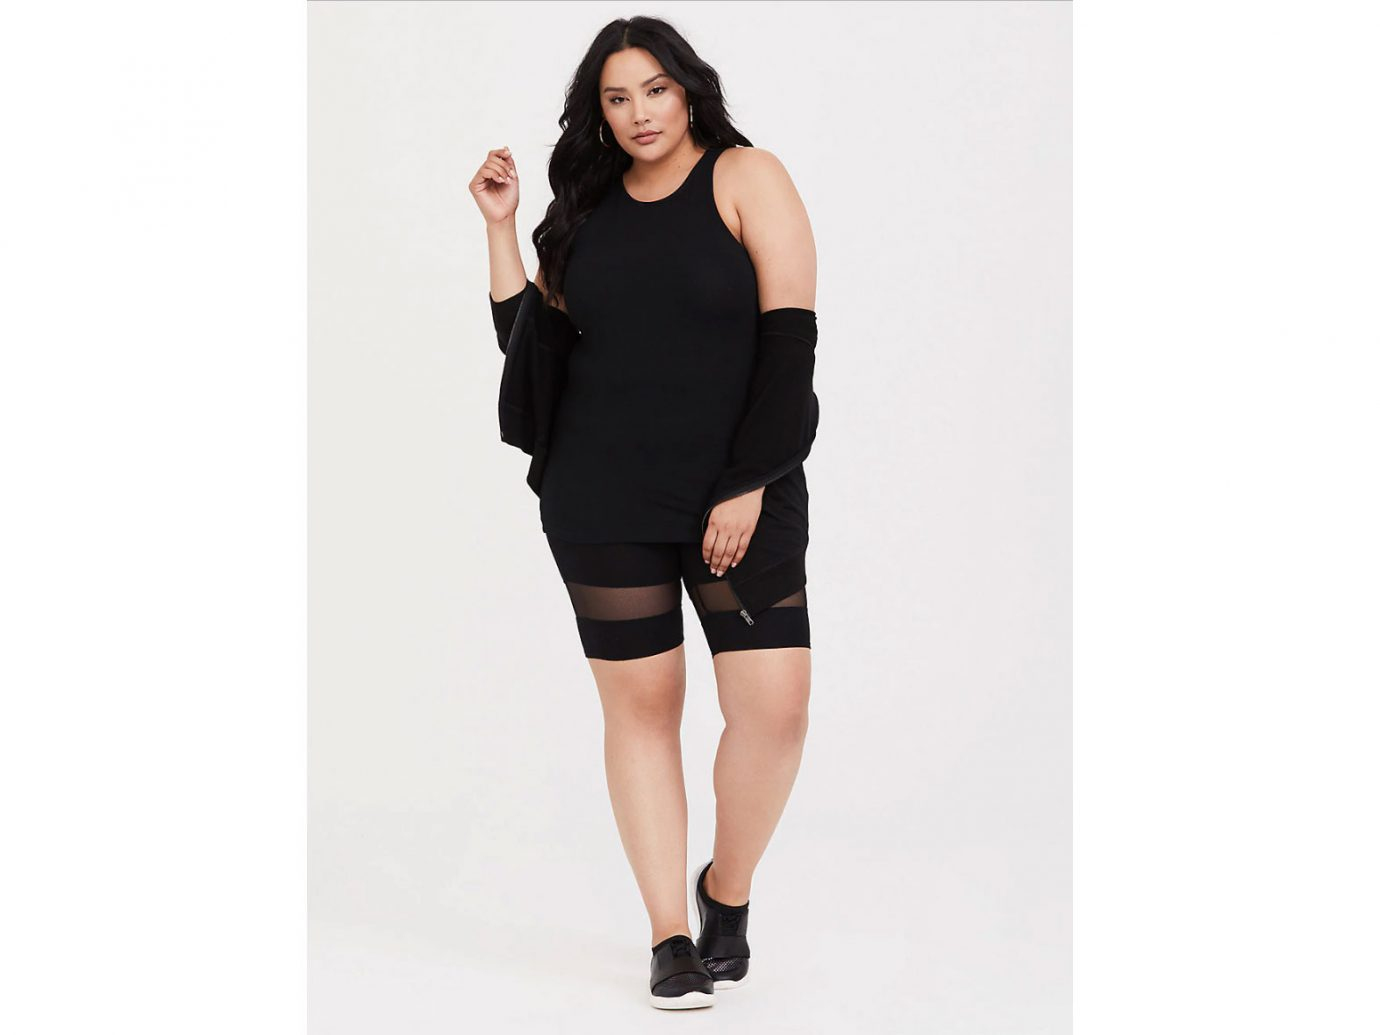 Torrid Black Mesh Inset Bike Short